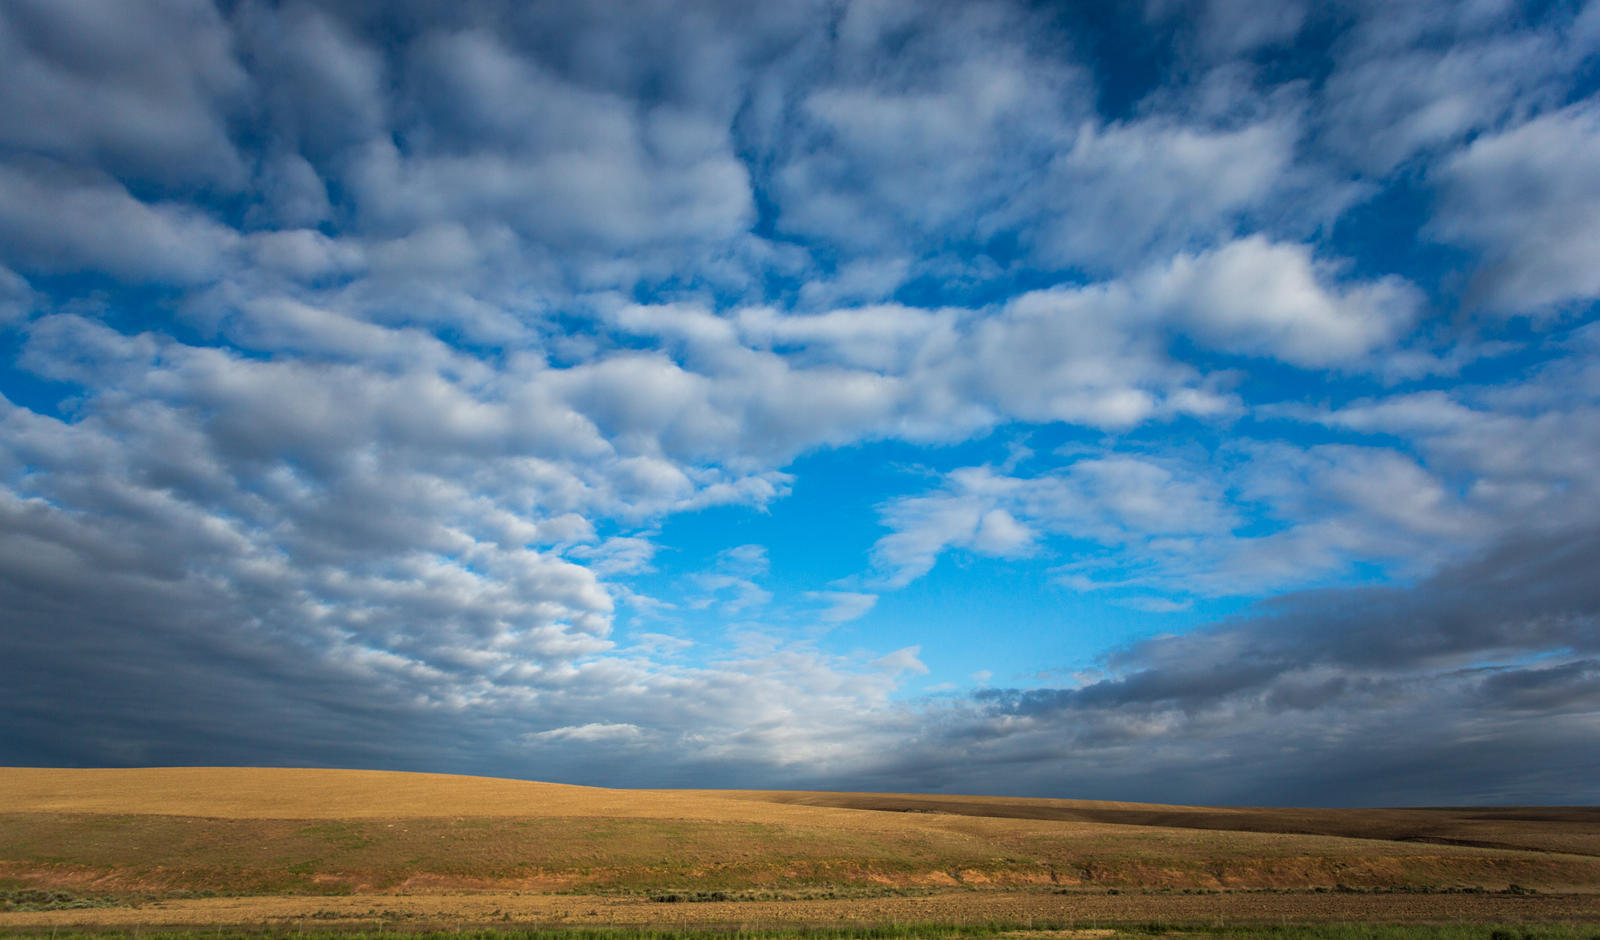 how to get blue sky in photos